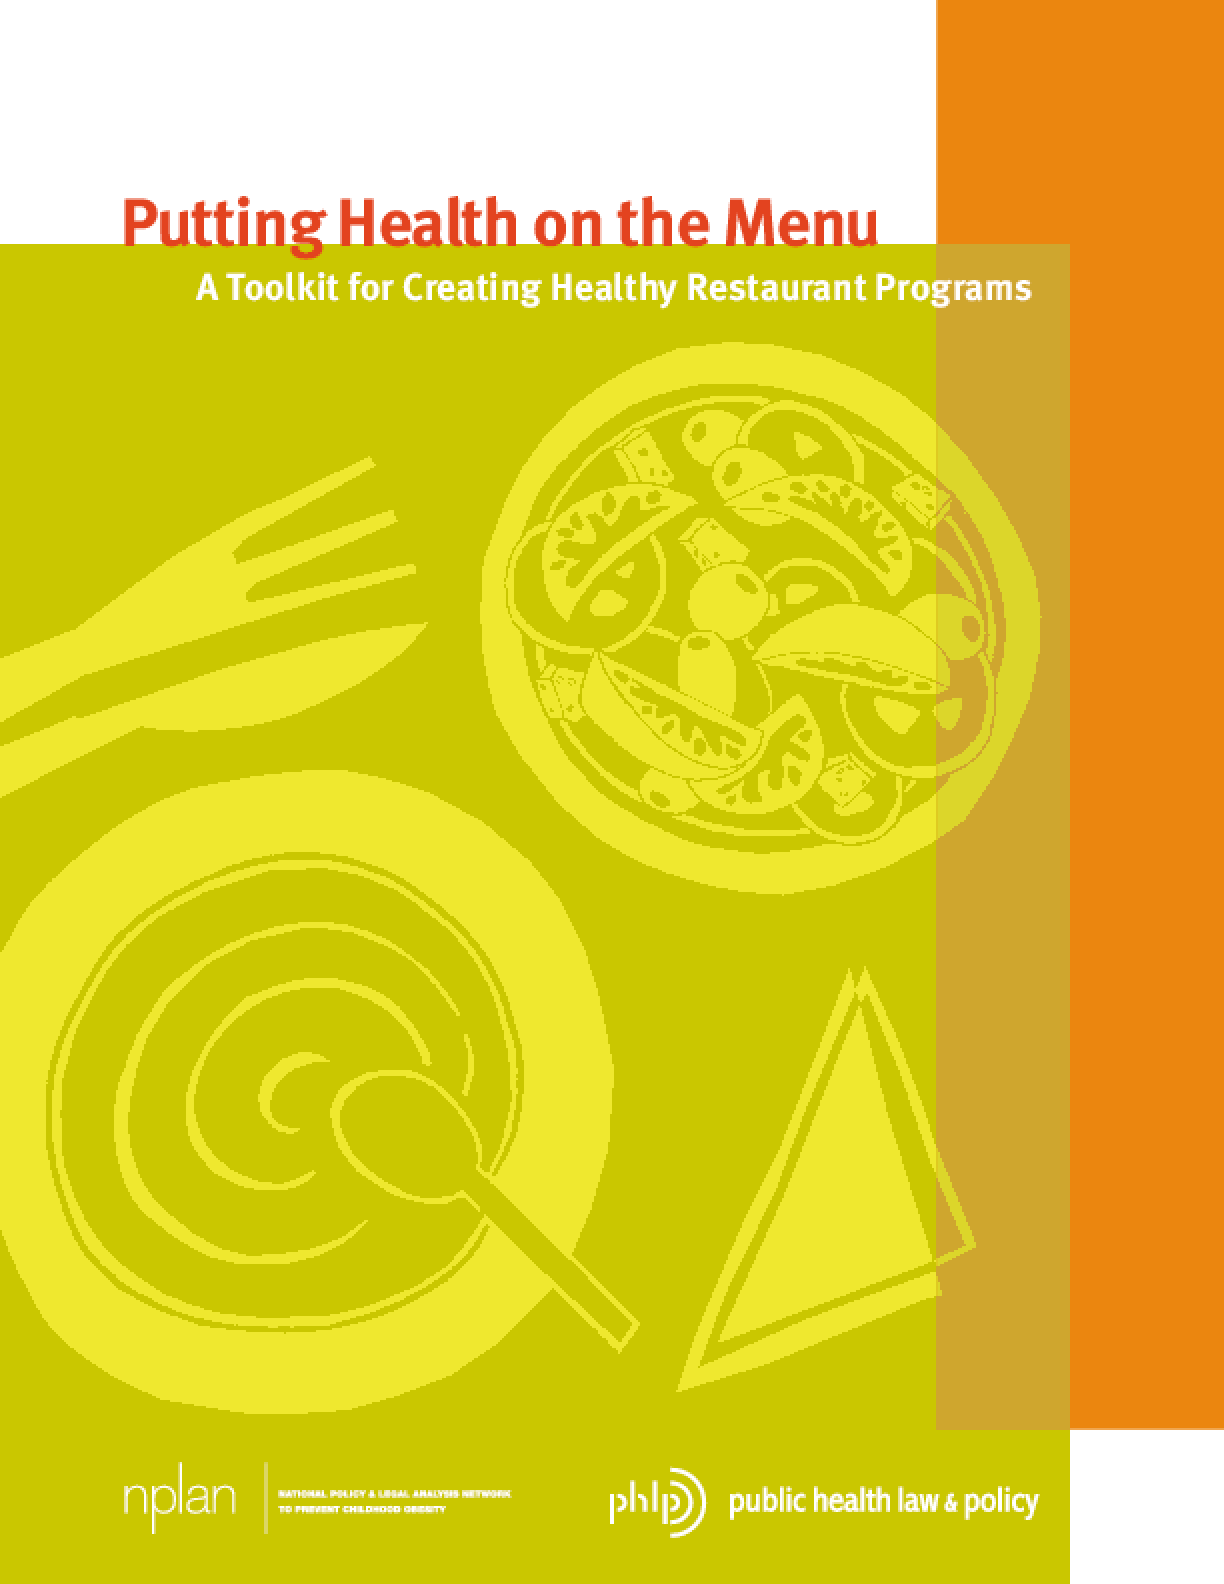 Putting Health on the Menu: A Toolkit for Creating Healthy Restaurant Programs